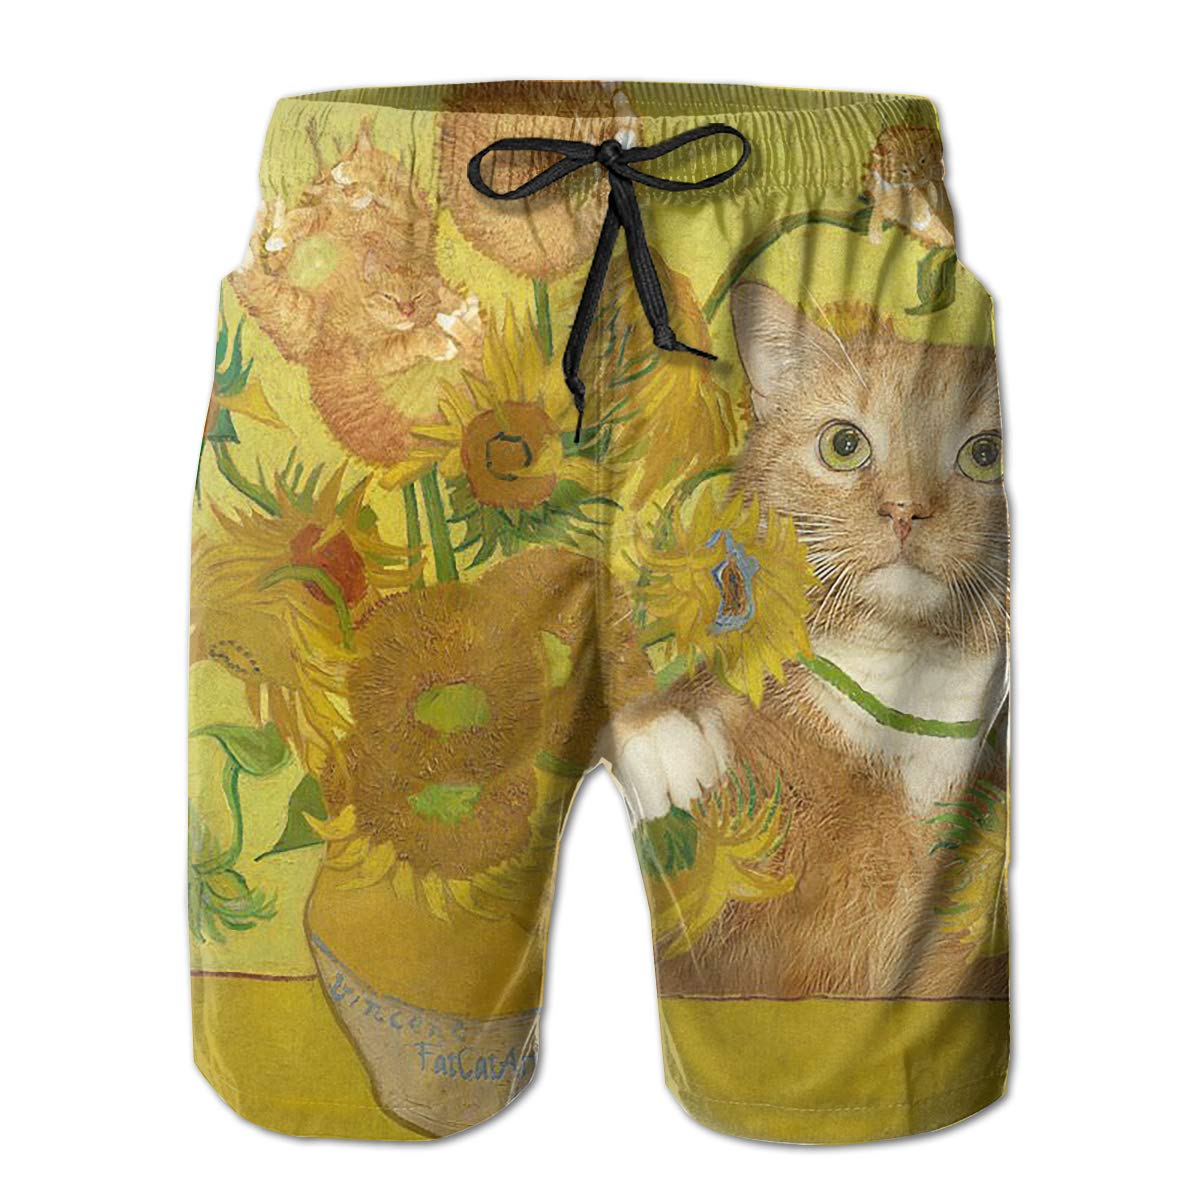 Mens Swim Trunks Sunflowers Cat Kitten Quick Dry Beach Board Shorts with Mesh Lining